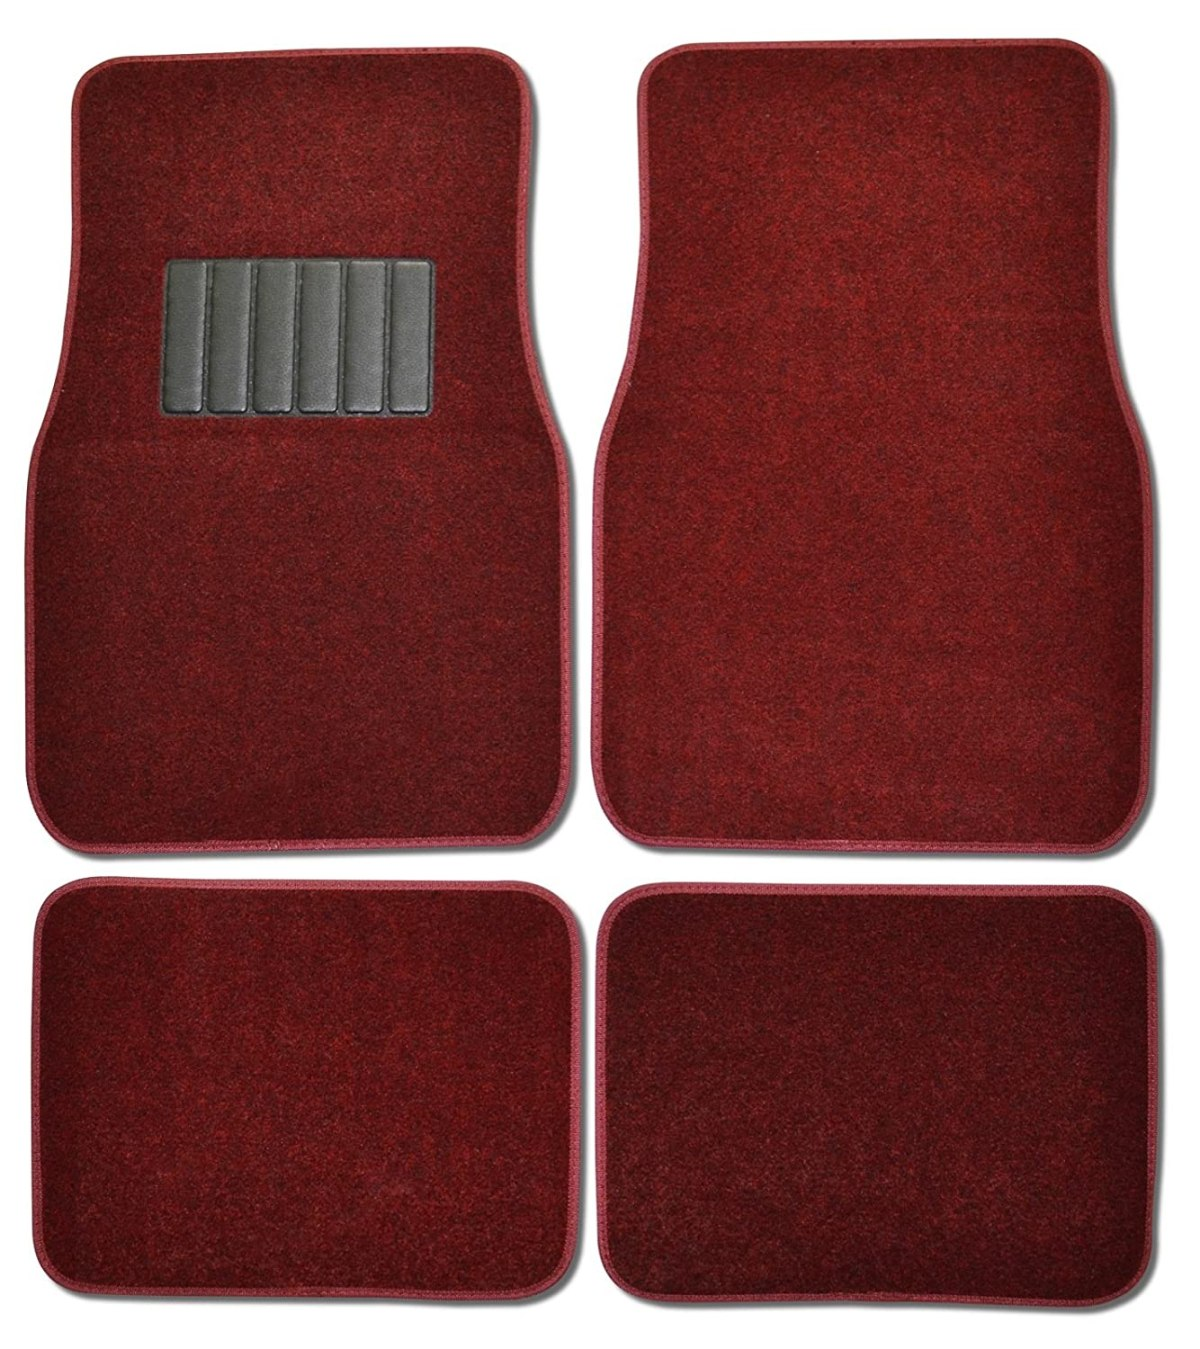 Best Floor Mats Reviews BDK MT-100-BD Burgundy Red Carpeted 4 Piece Car SUV Floor Mats With Vinyl Heel Pad Car Vehicle Universal Fit